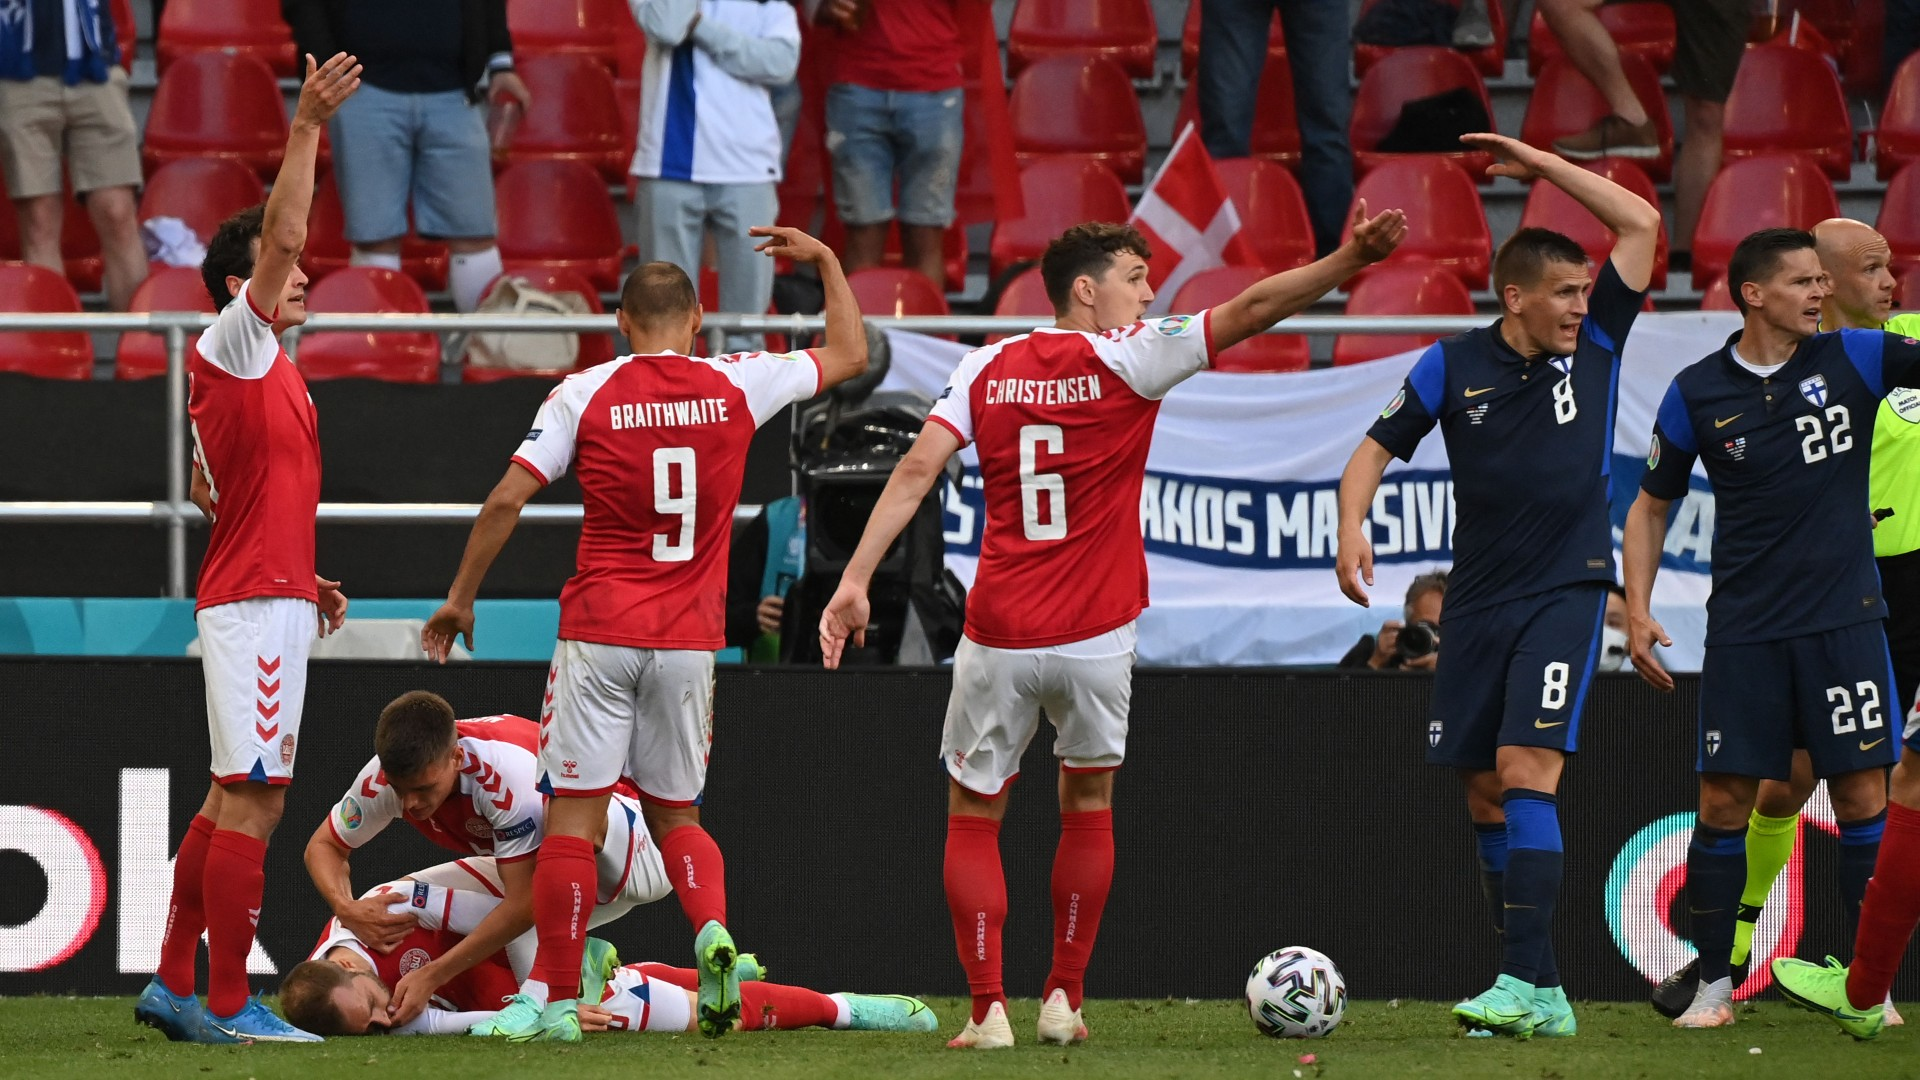 'I knew straightaway something was wrong' - Denmark-Finland referee recounts moment Eriksen collapsed on field